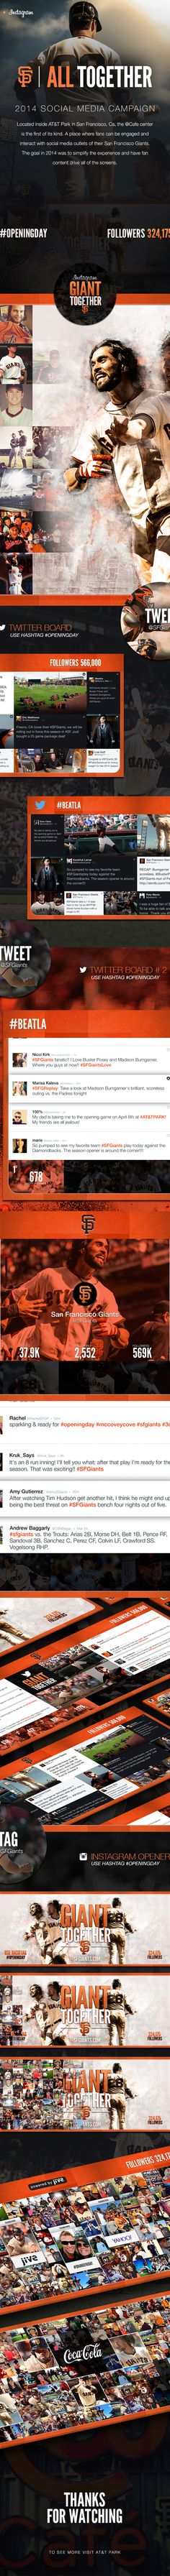 An Excellent Social Media Campaign!  SF Giants Social Media Campaign 2014 by Tony DeAngelo, via Behance